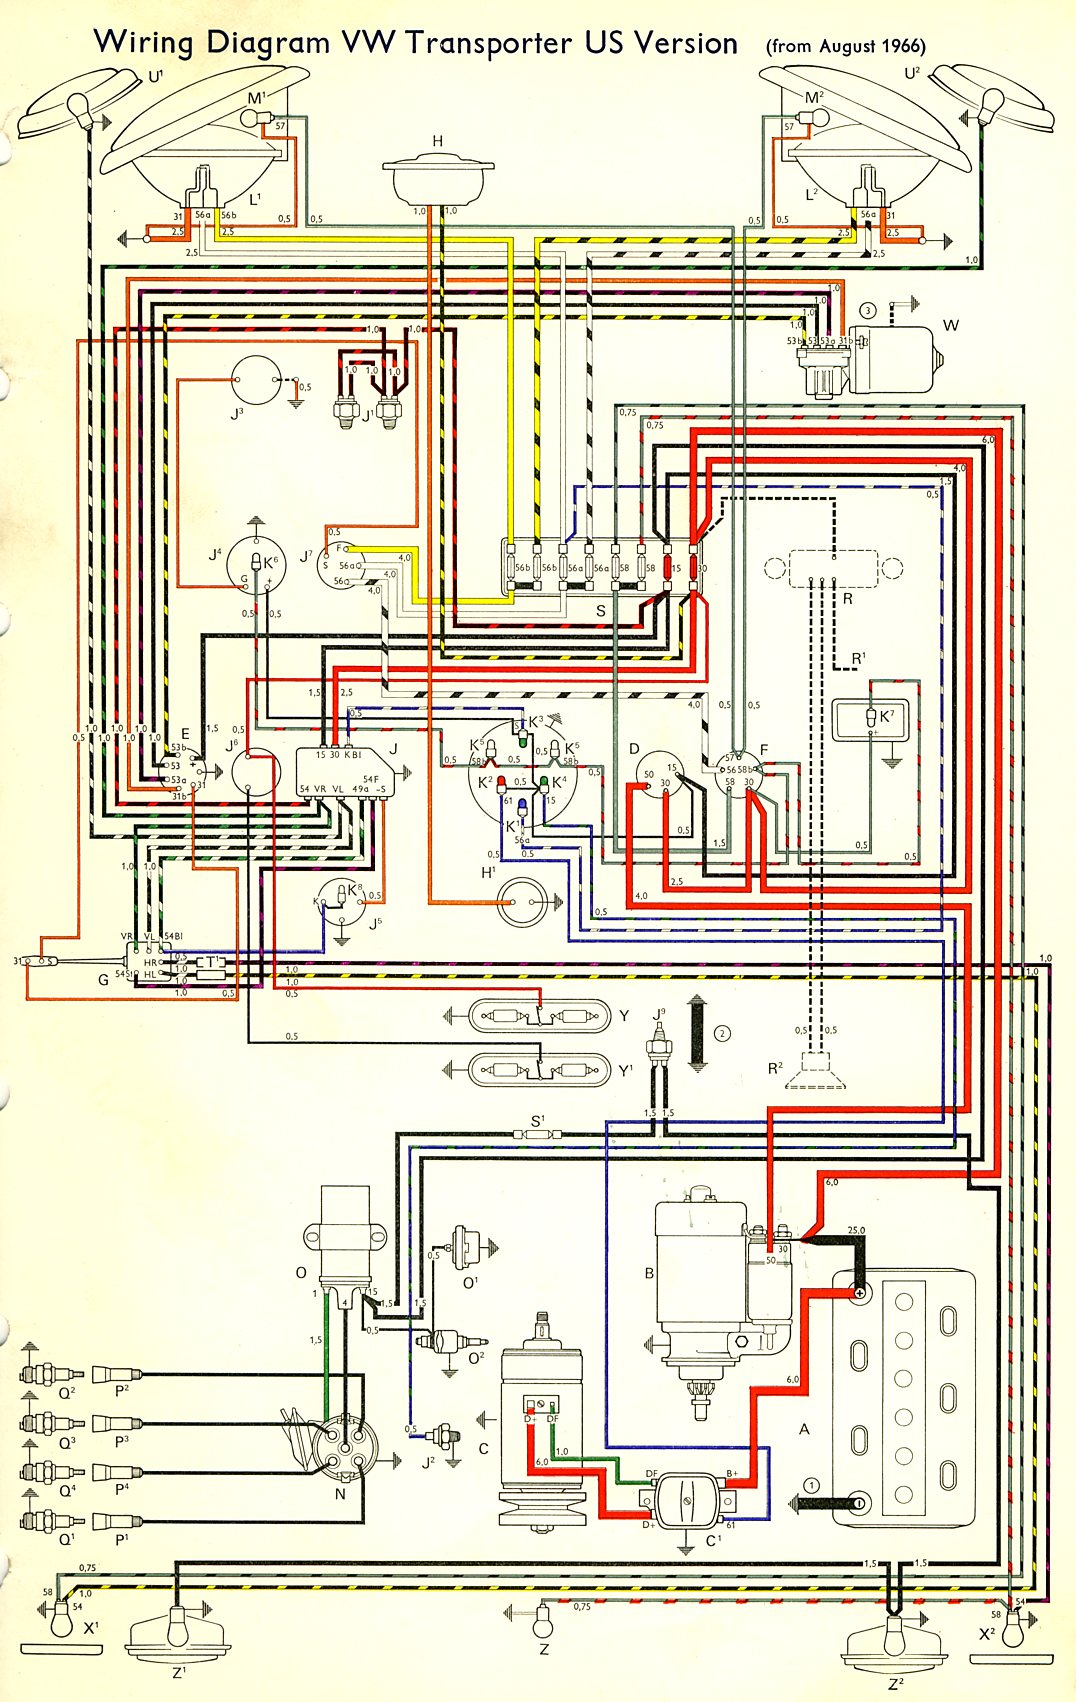 bus_67_USA 1967 bus wiring diagram (usa) thegoldenbug com 1971 vw bus wiring diagram at bakdesigns.co